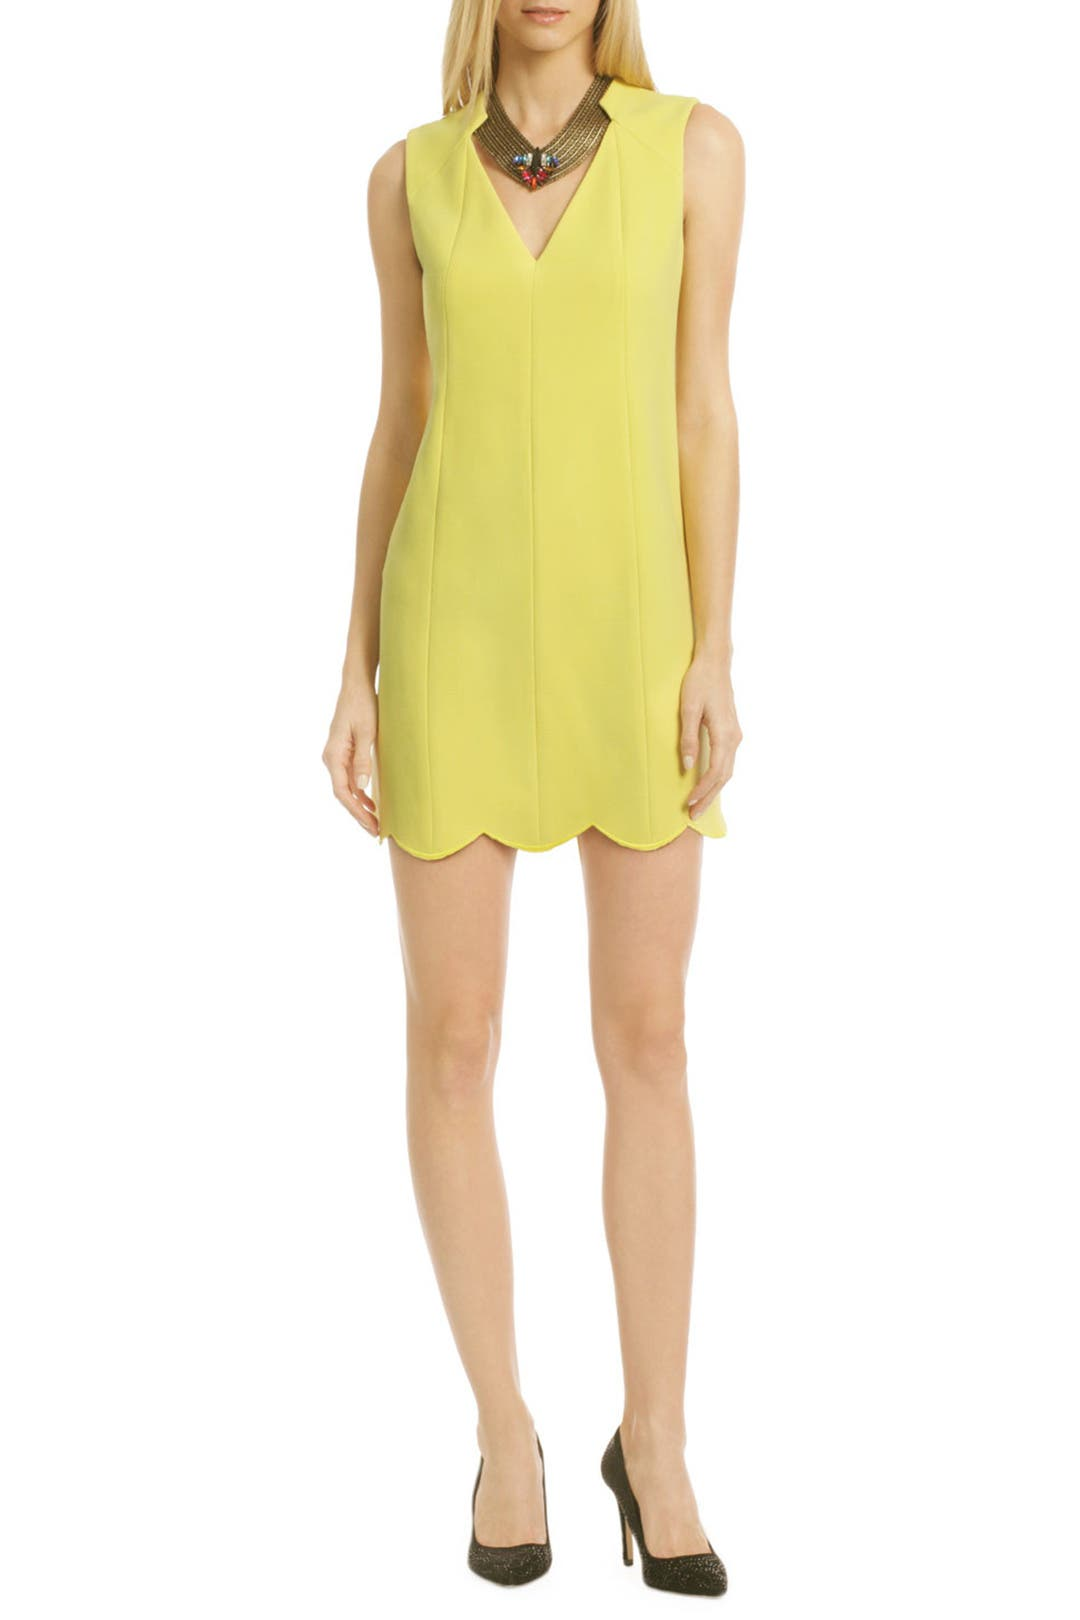 Lemon Pie Sheath by Rachel Roy